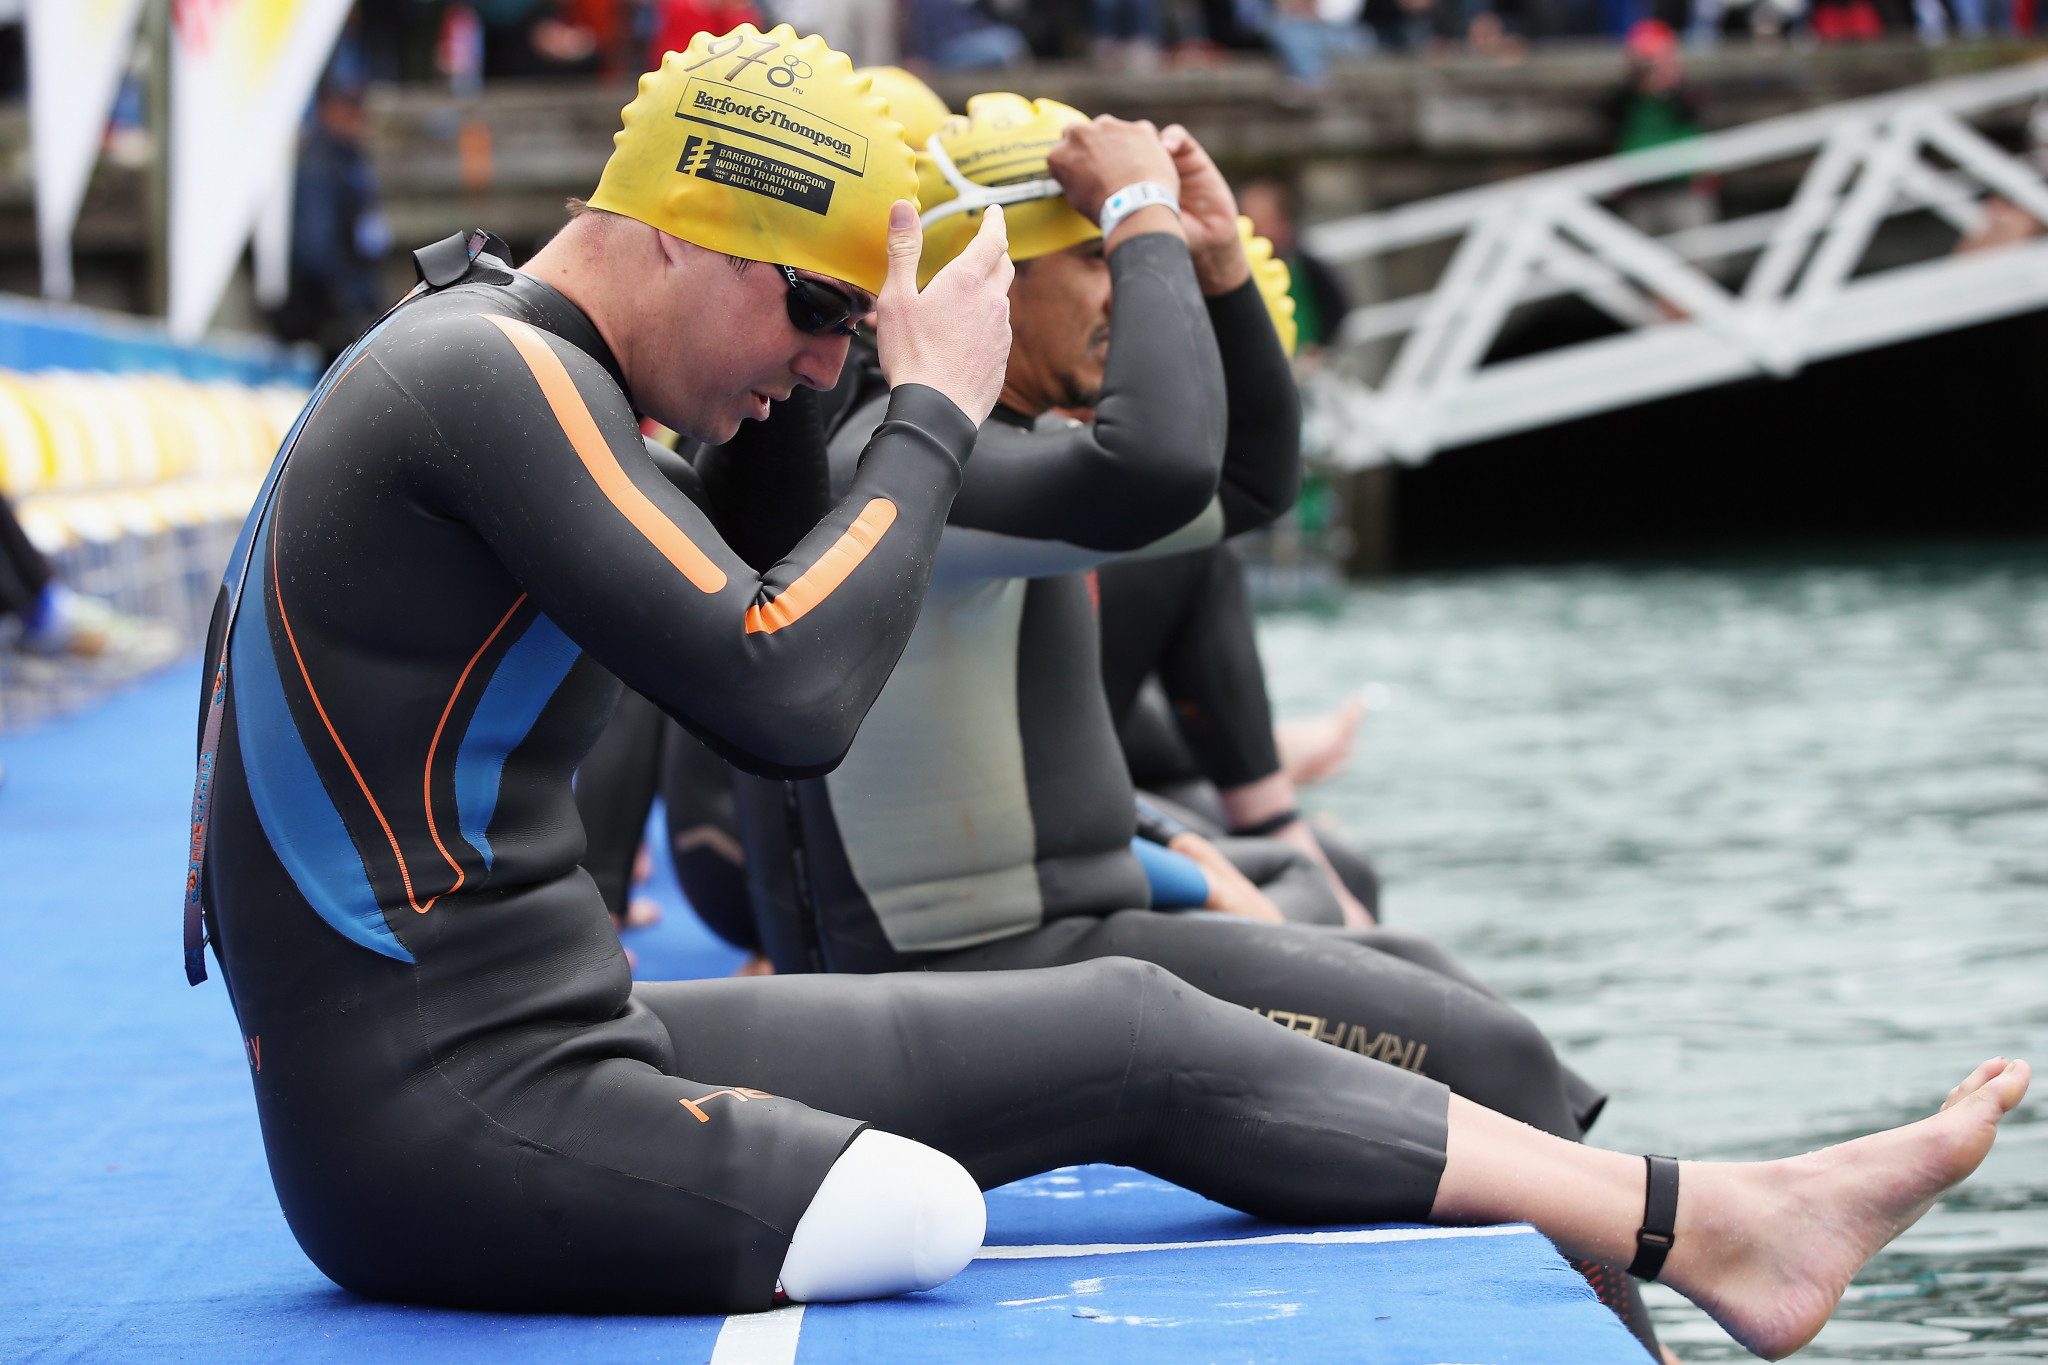 United States dominate Paratriathlon American Championships in Sarasota